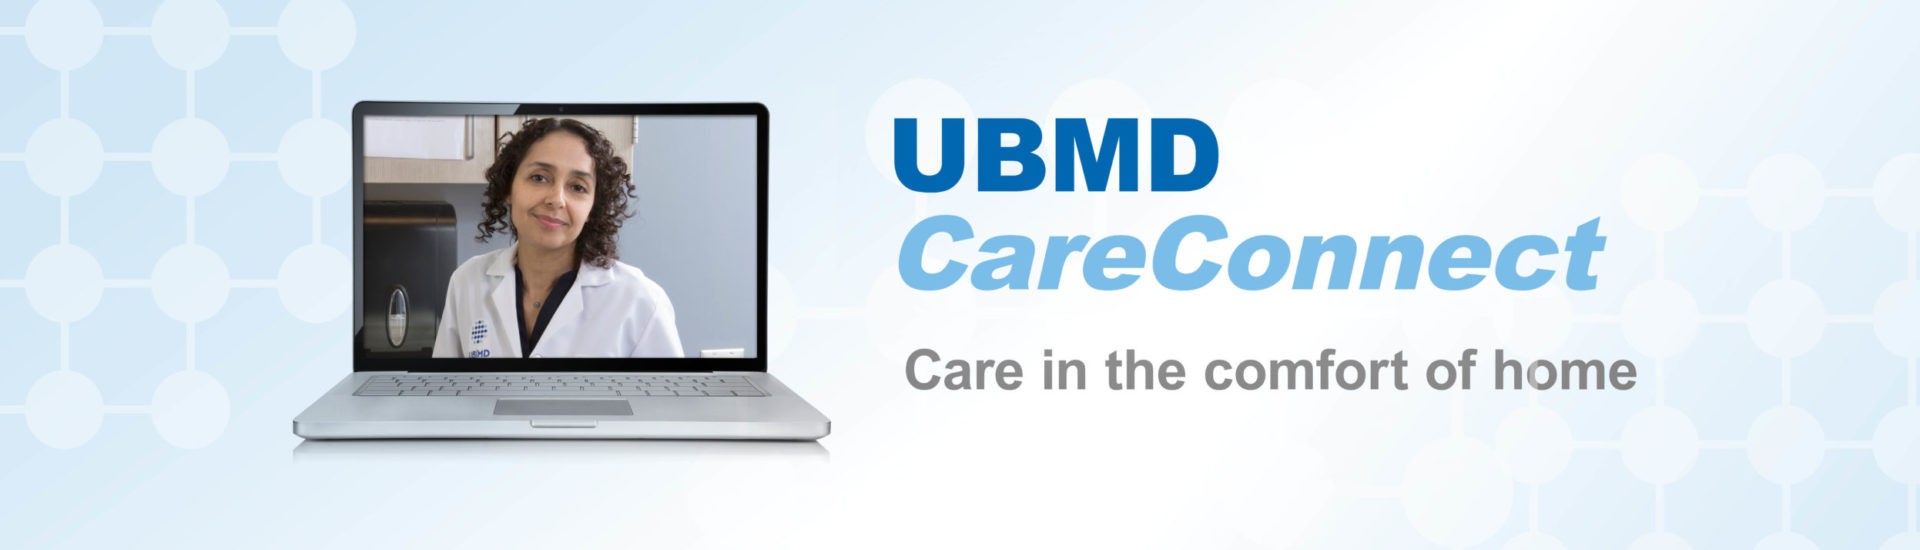 Photo promoting UBMD OBGYN CareConnect